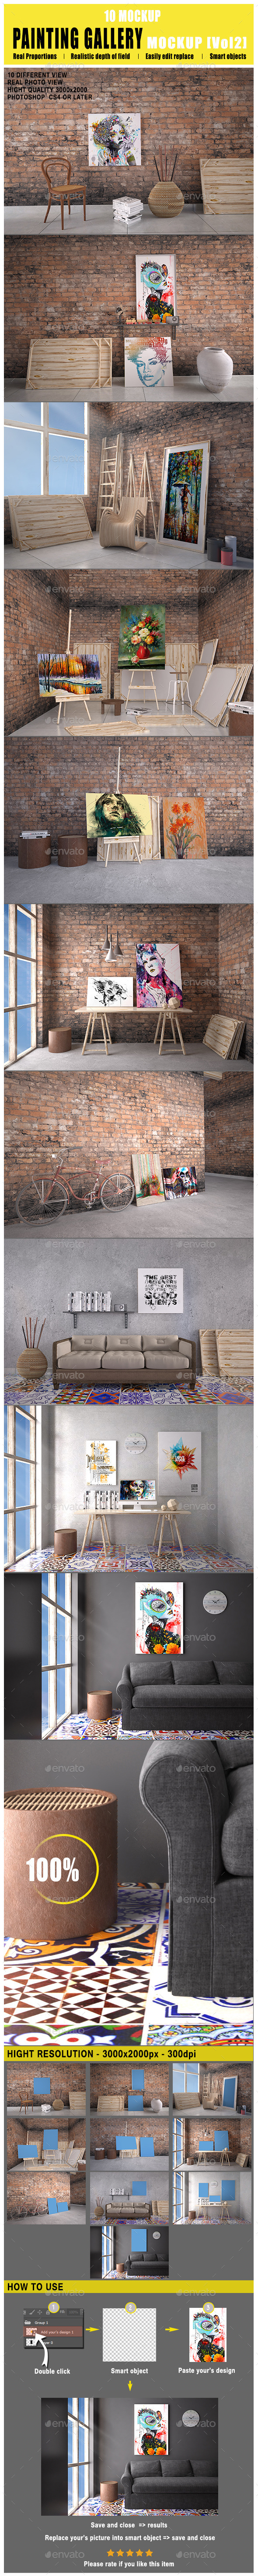 GraphicRiver Painting Gallery Mockup [Vol2] 11033401